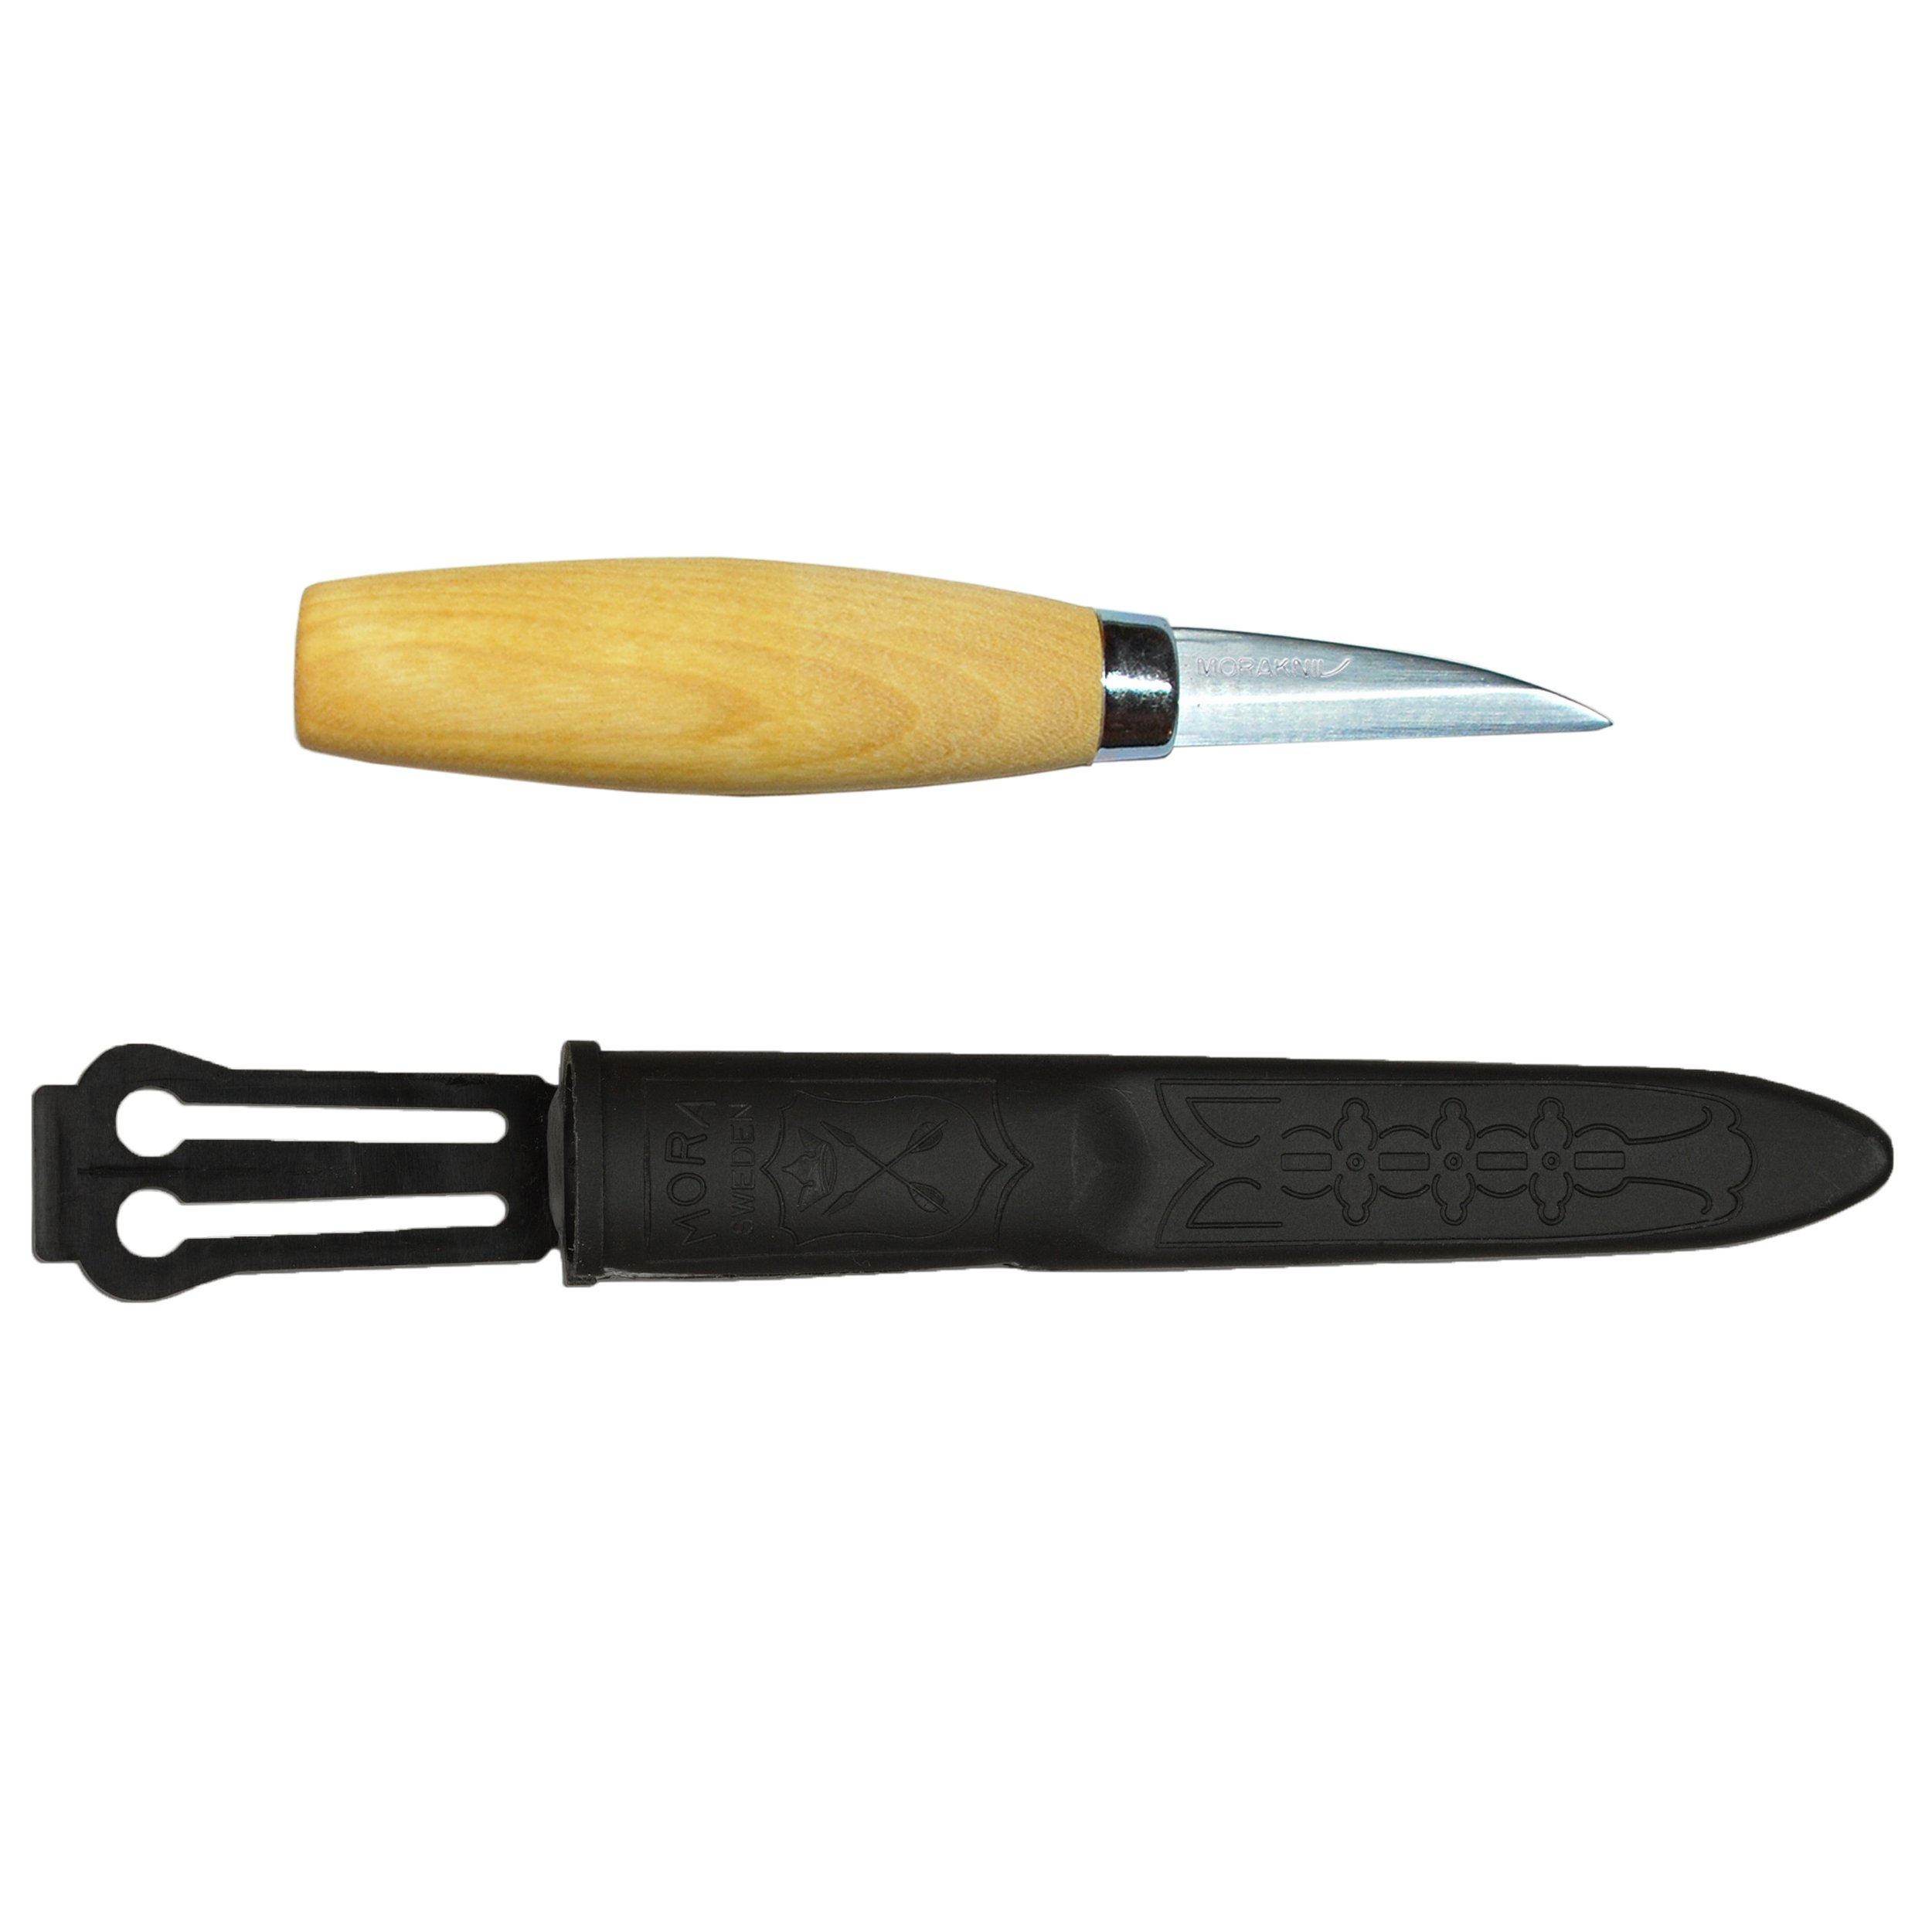 Morakniv Wood Carving 122 Knife with Laminated Steel Blade (2.4-Inch)